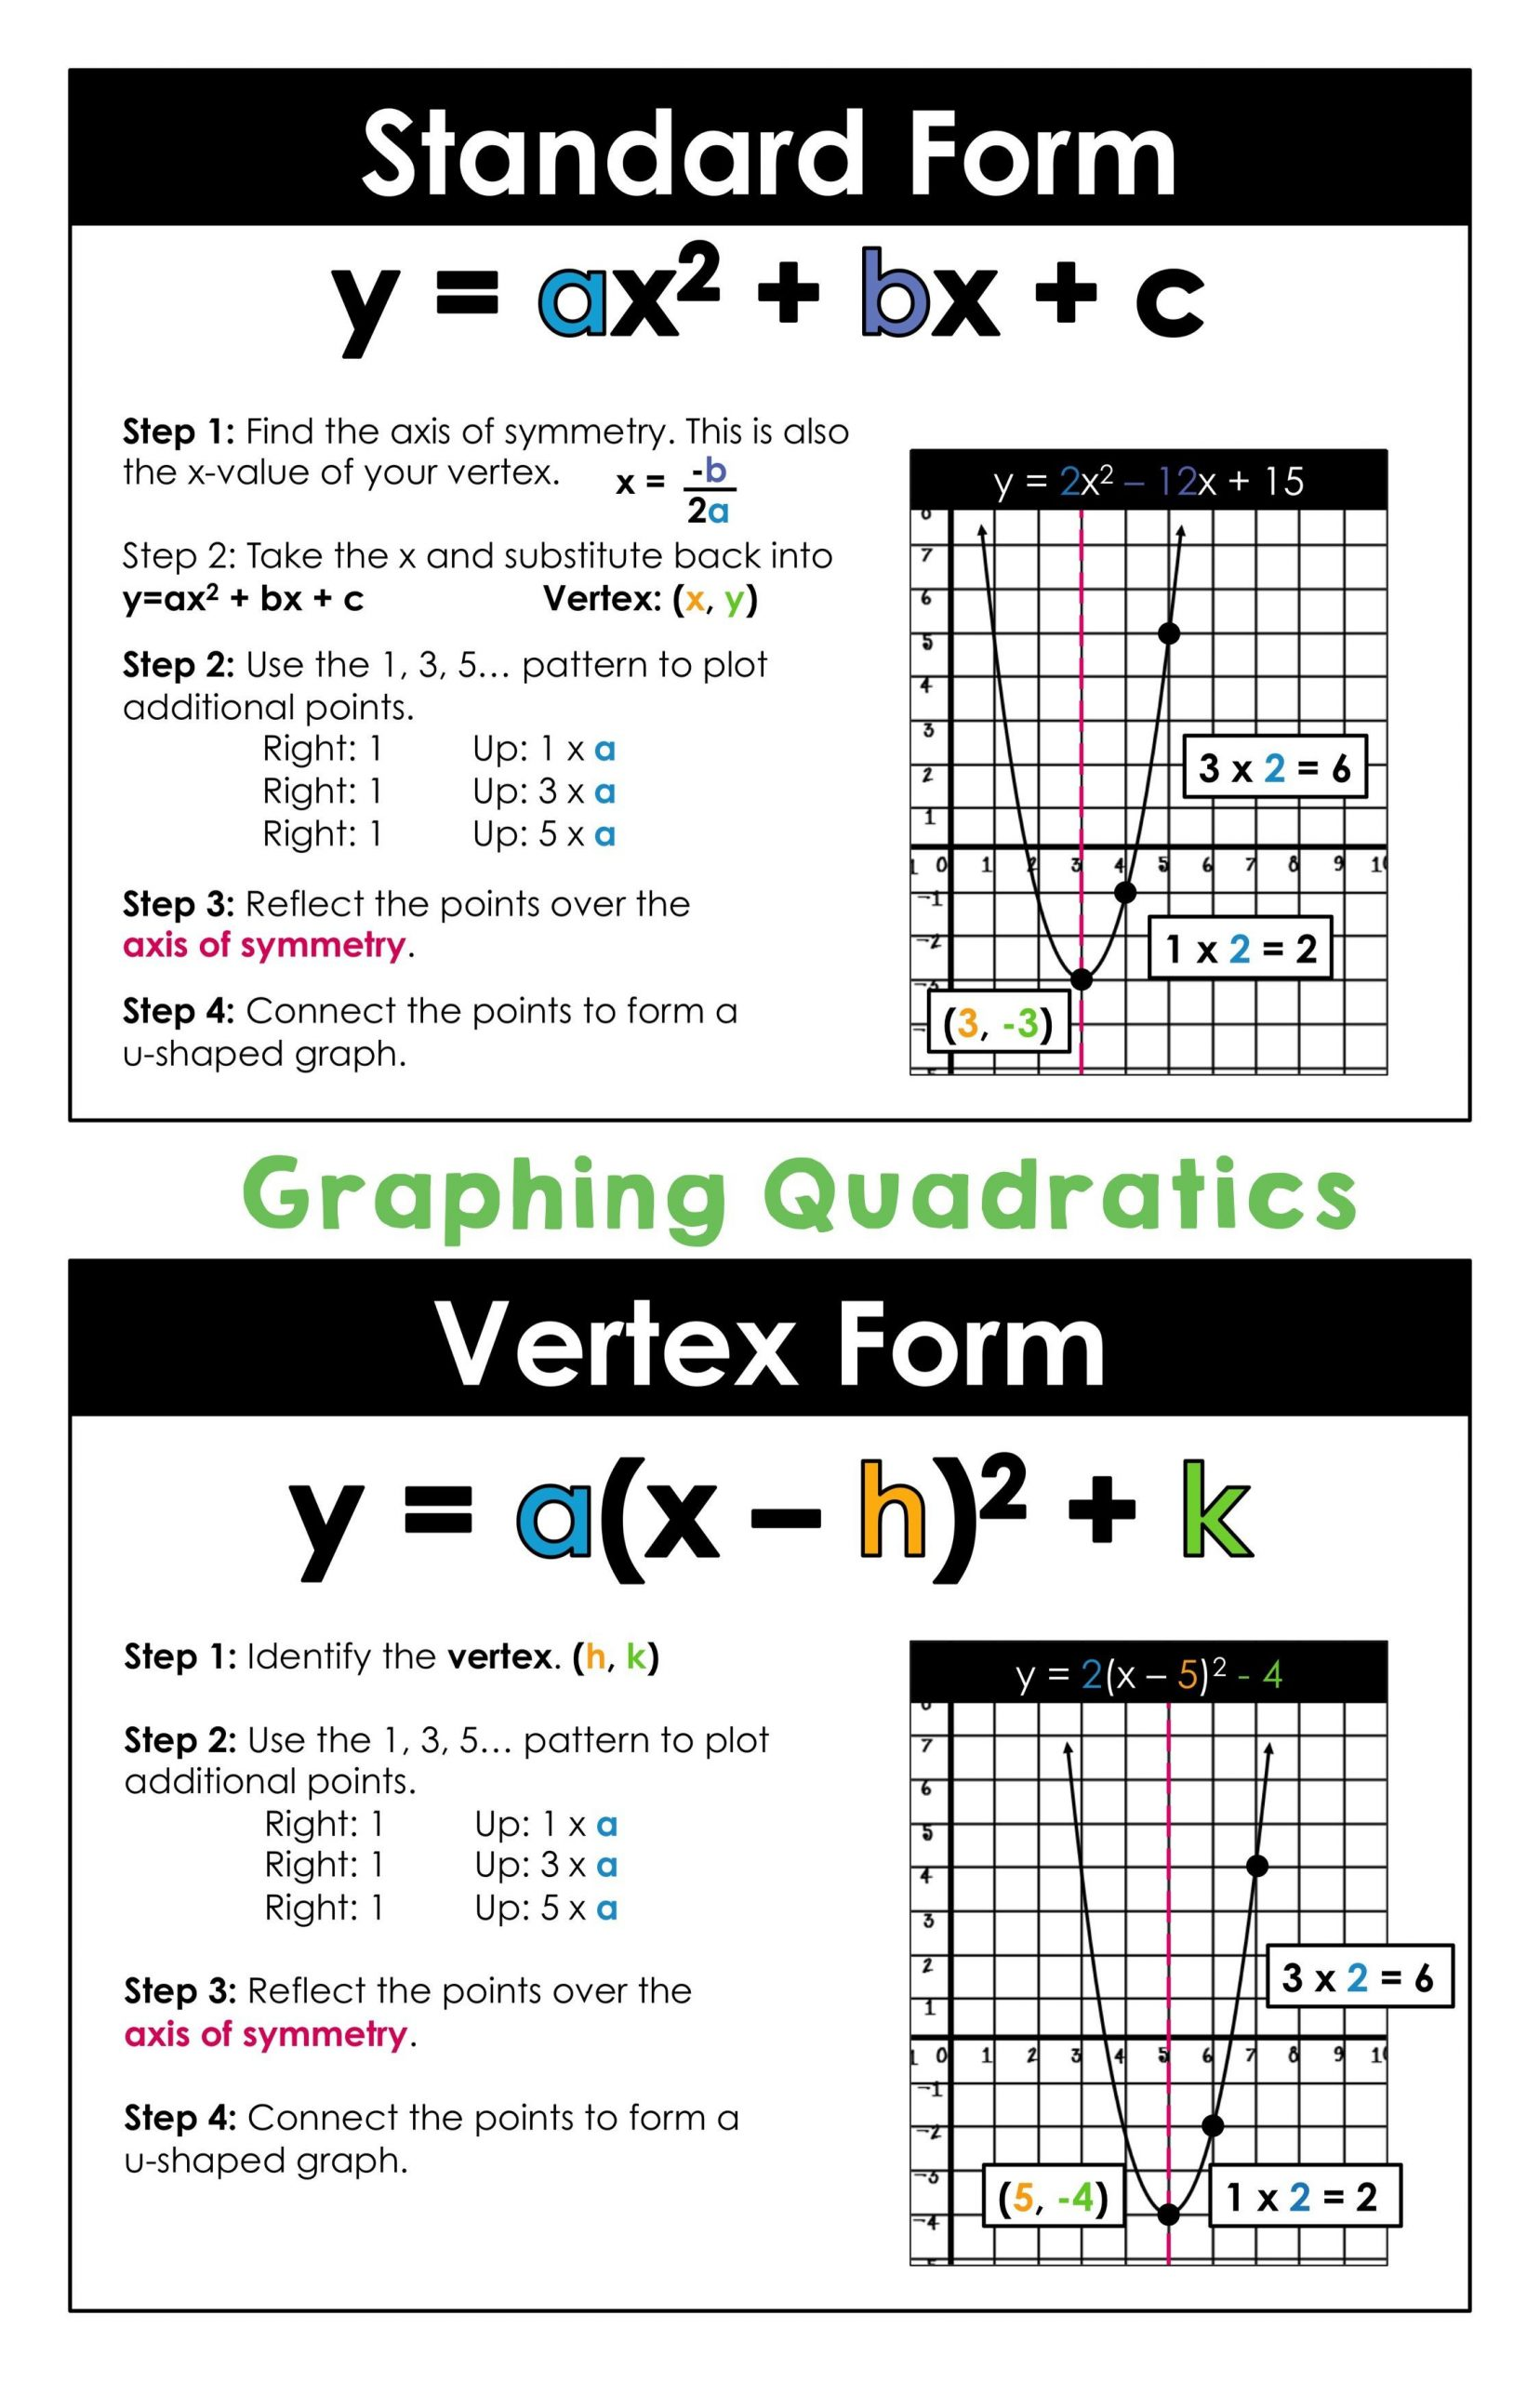 Graphing Quadratic Functions Worksheet Graphing Quadratics In Standard form and Vertex form